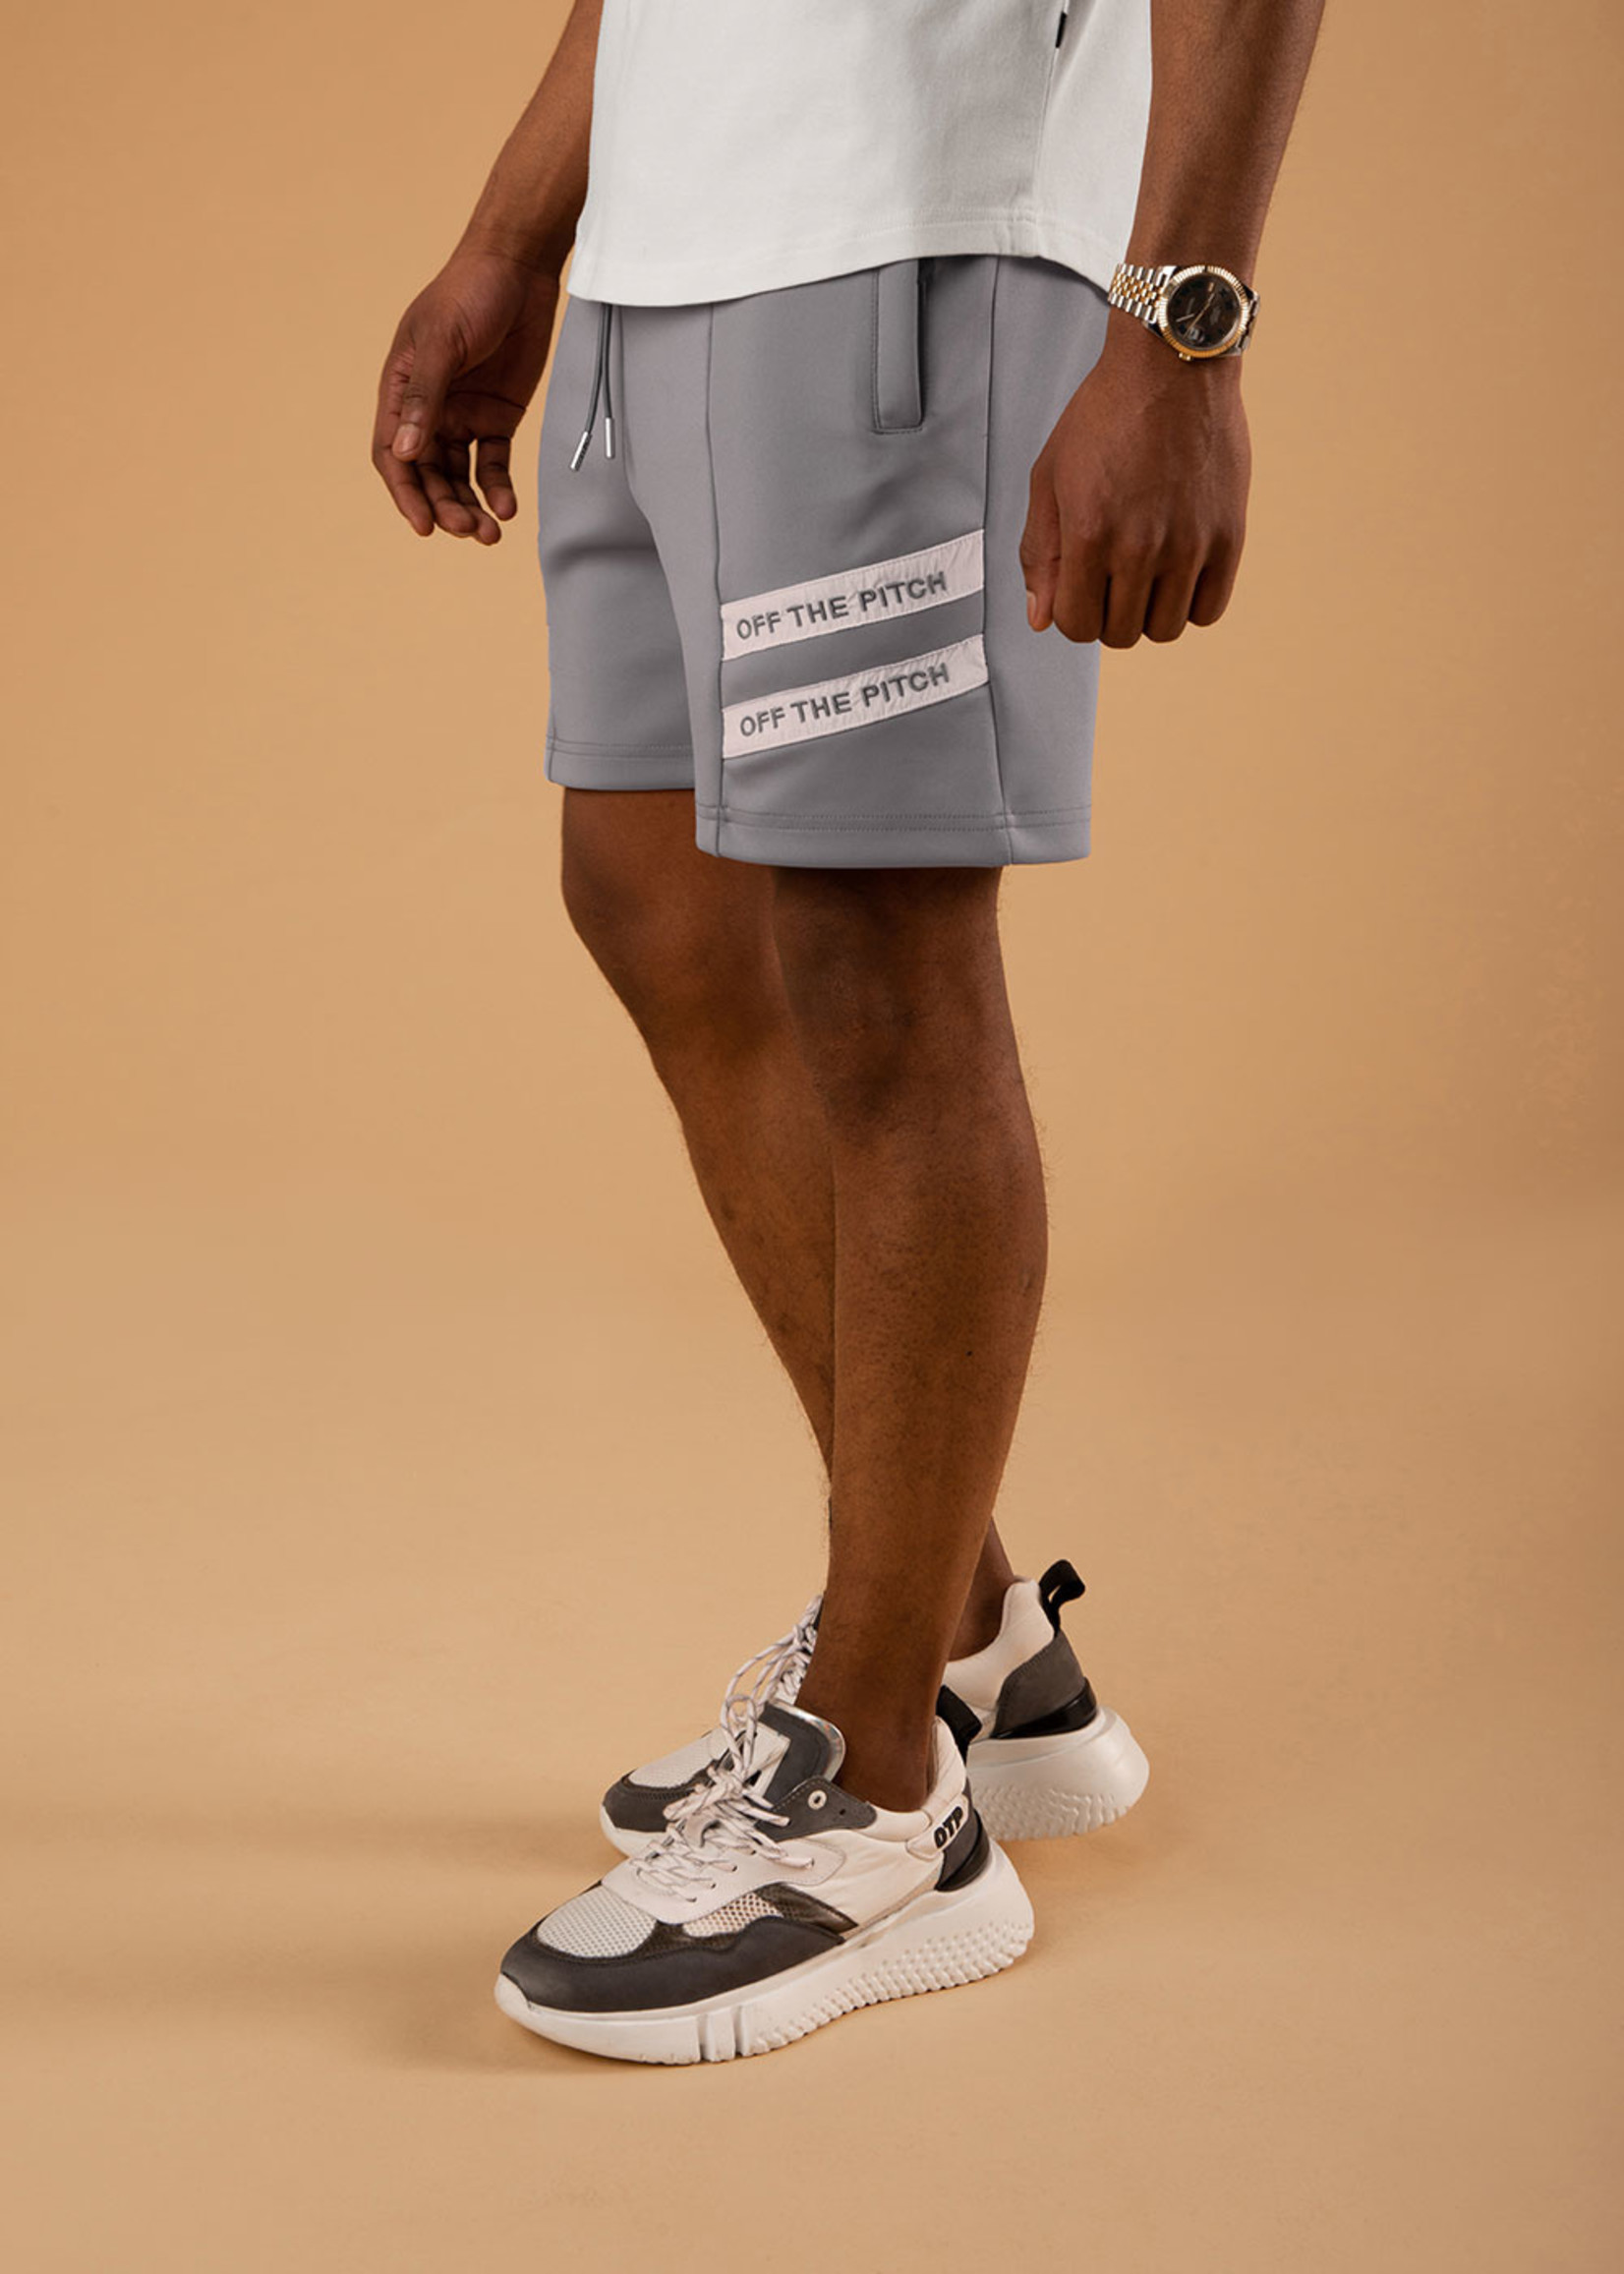 OFF THE PITCH OFF THE PITCH The Mercury Short - Grey